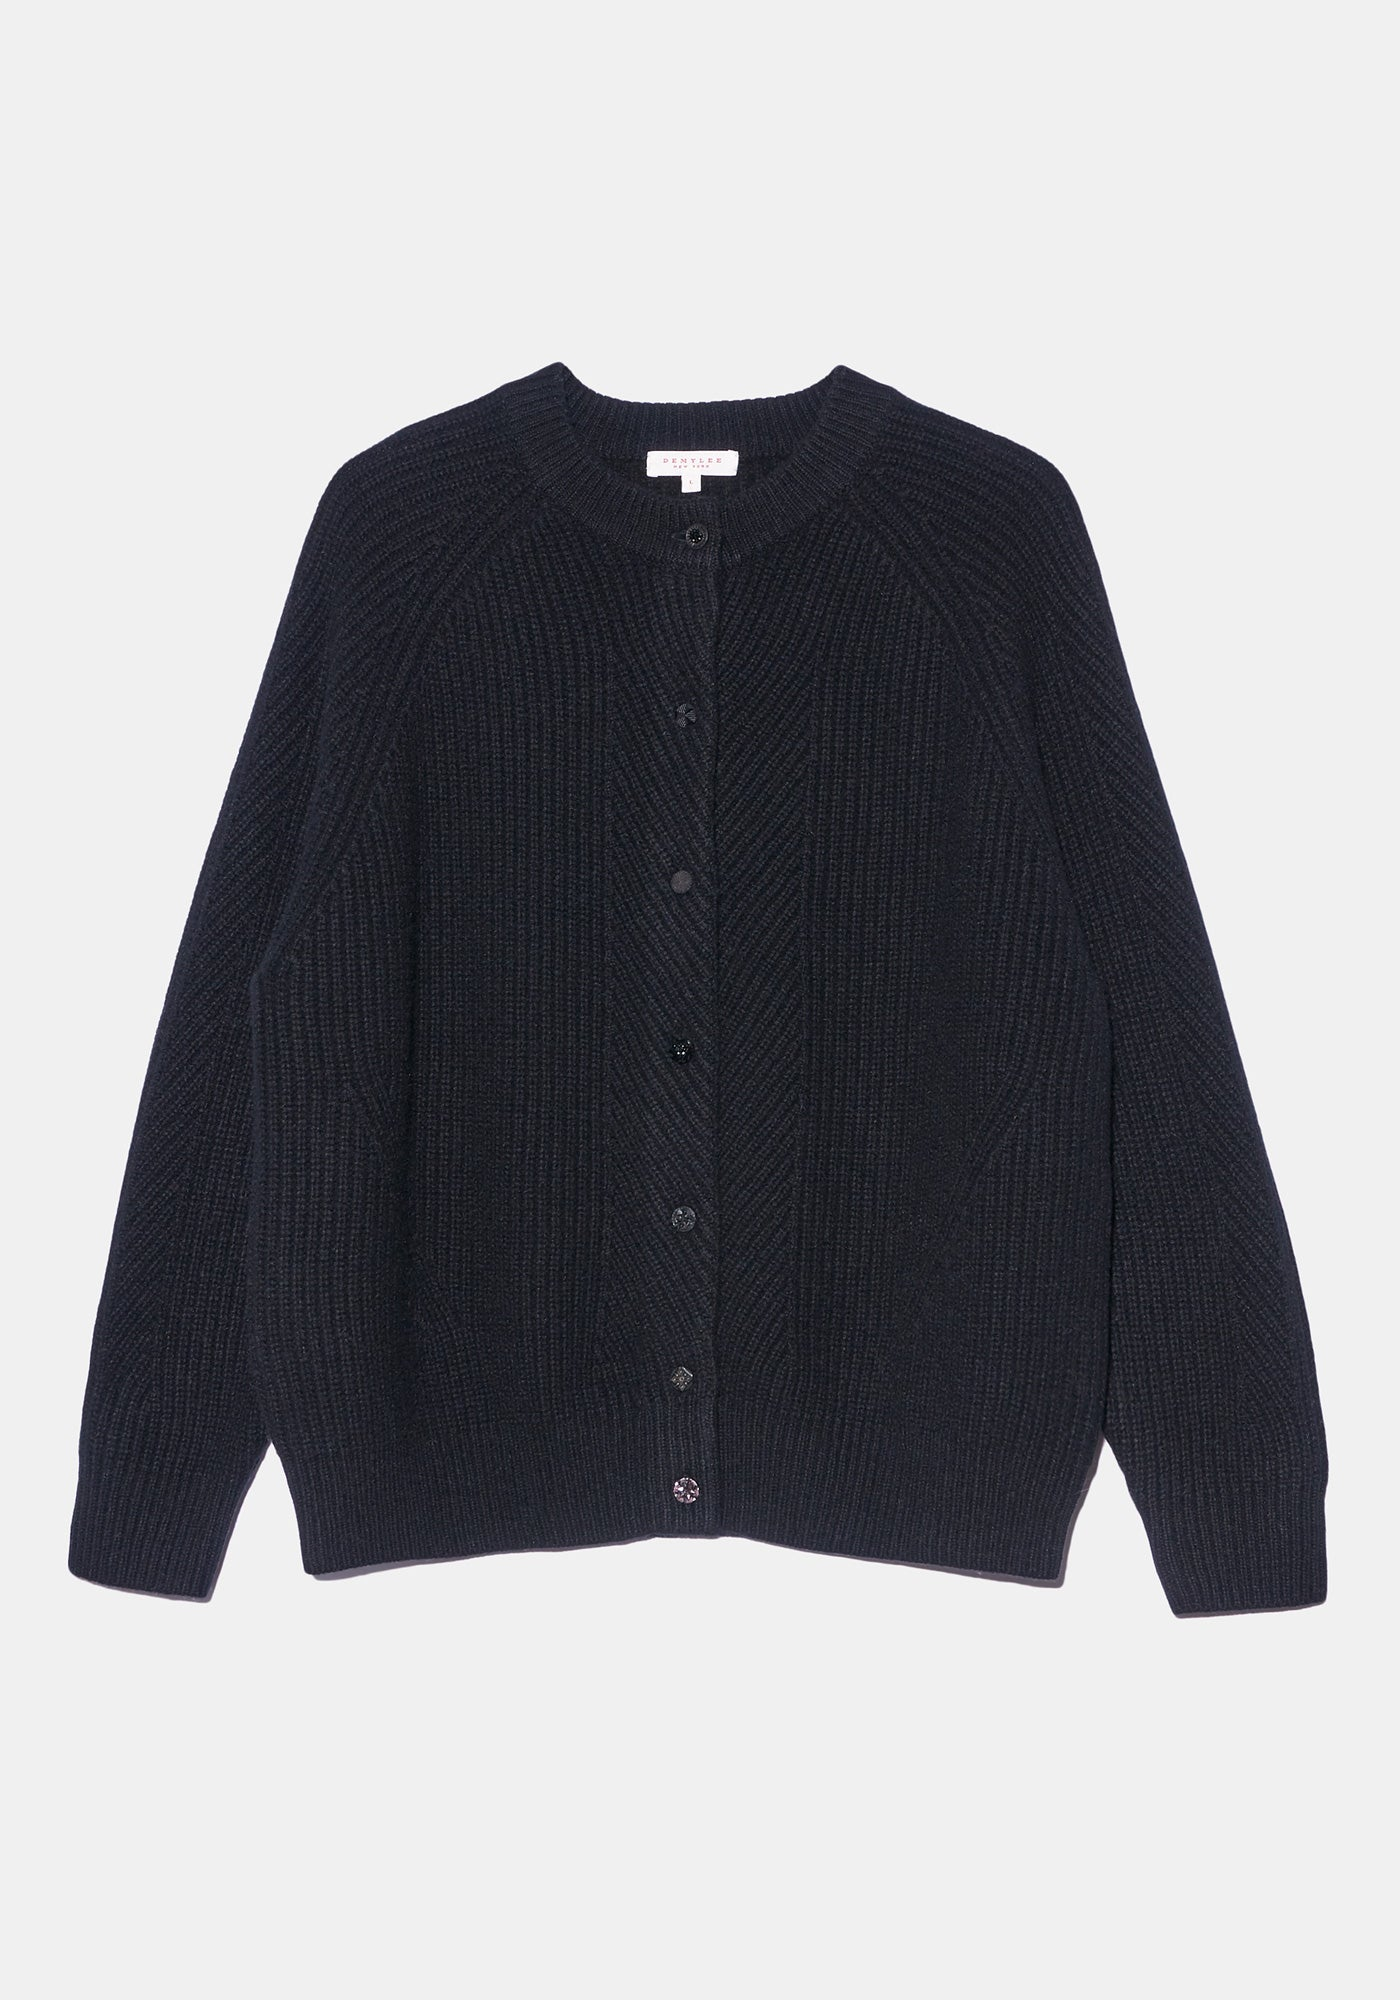 Black Cashmere Cardigan - L - Black Glass